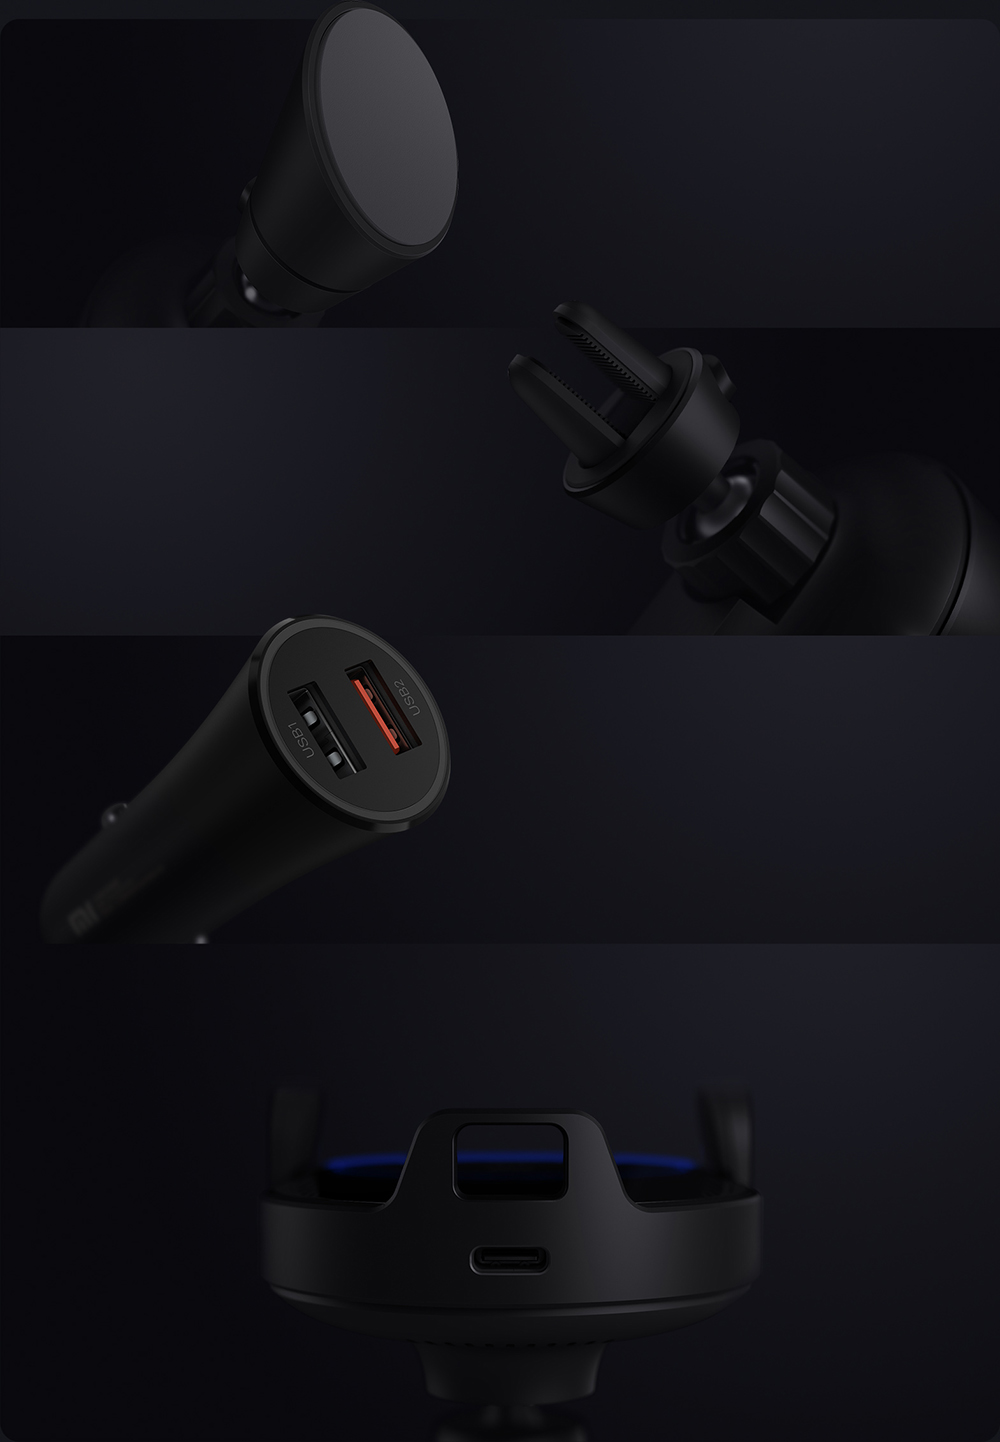 Xiaomi Mijia Wireless Car Charger Fast Charge 20W Max Electric Auto Pinch 2.5D Glass Ring Lit For Mi 9 10W 7